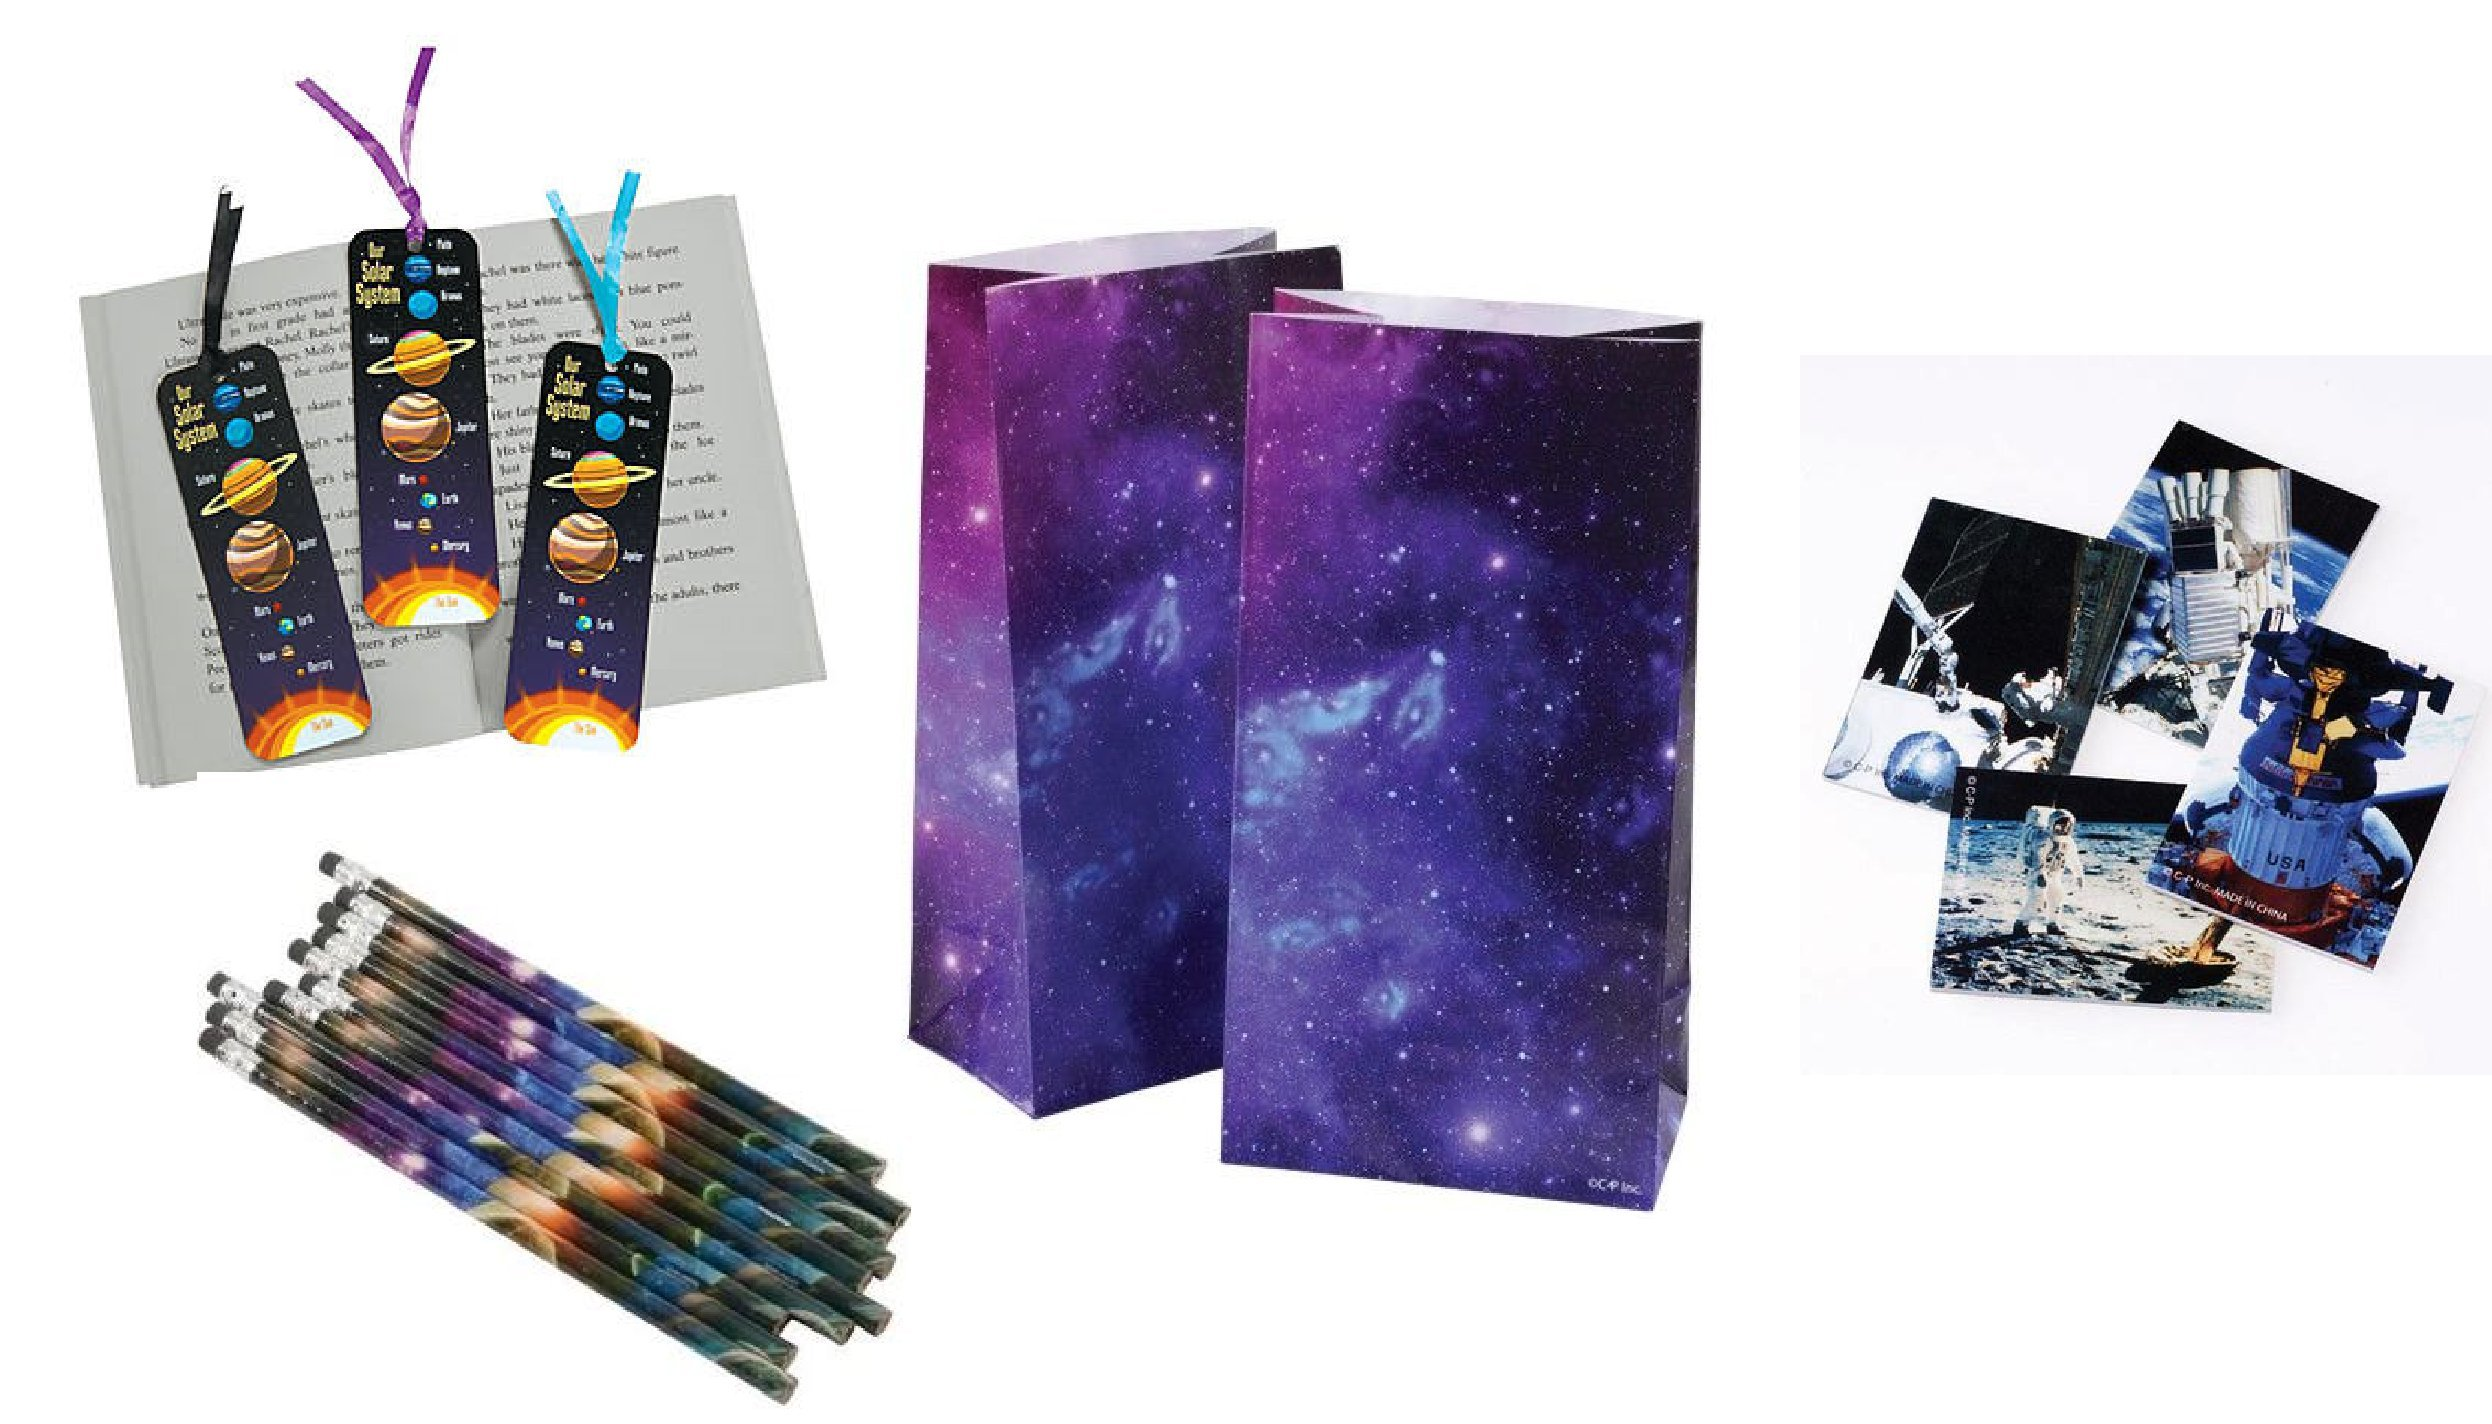 Awesome Space/Solar System Theme Party Pack - 48 Solar System Bookmarks/12 Space Pencils/12 Space Station Notebooks & 12 Space Goody Bags